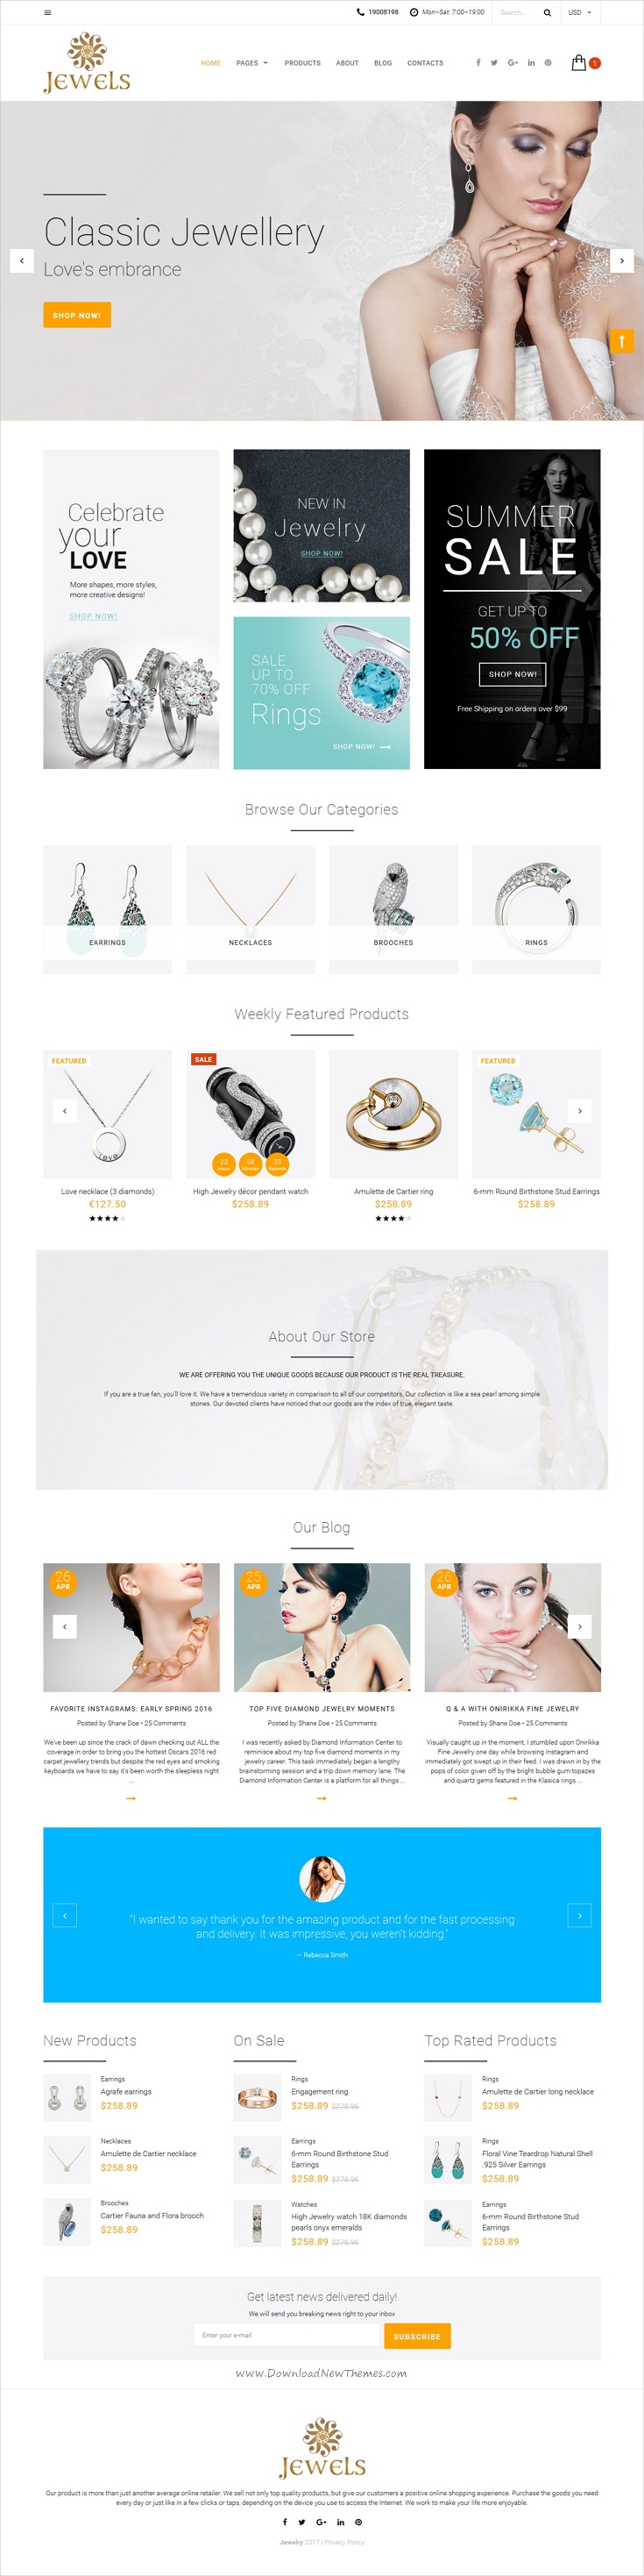 jewelry is a wonderful responsive html5 template for awesome